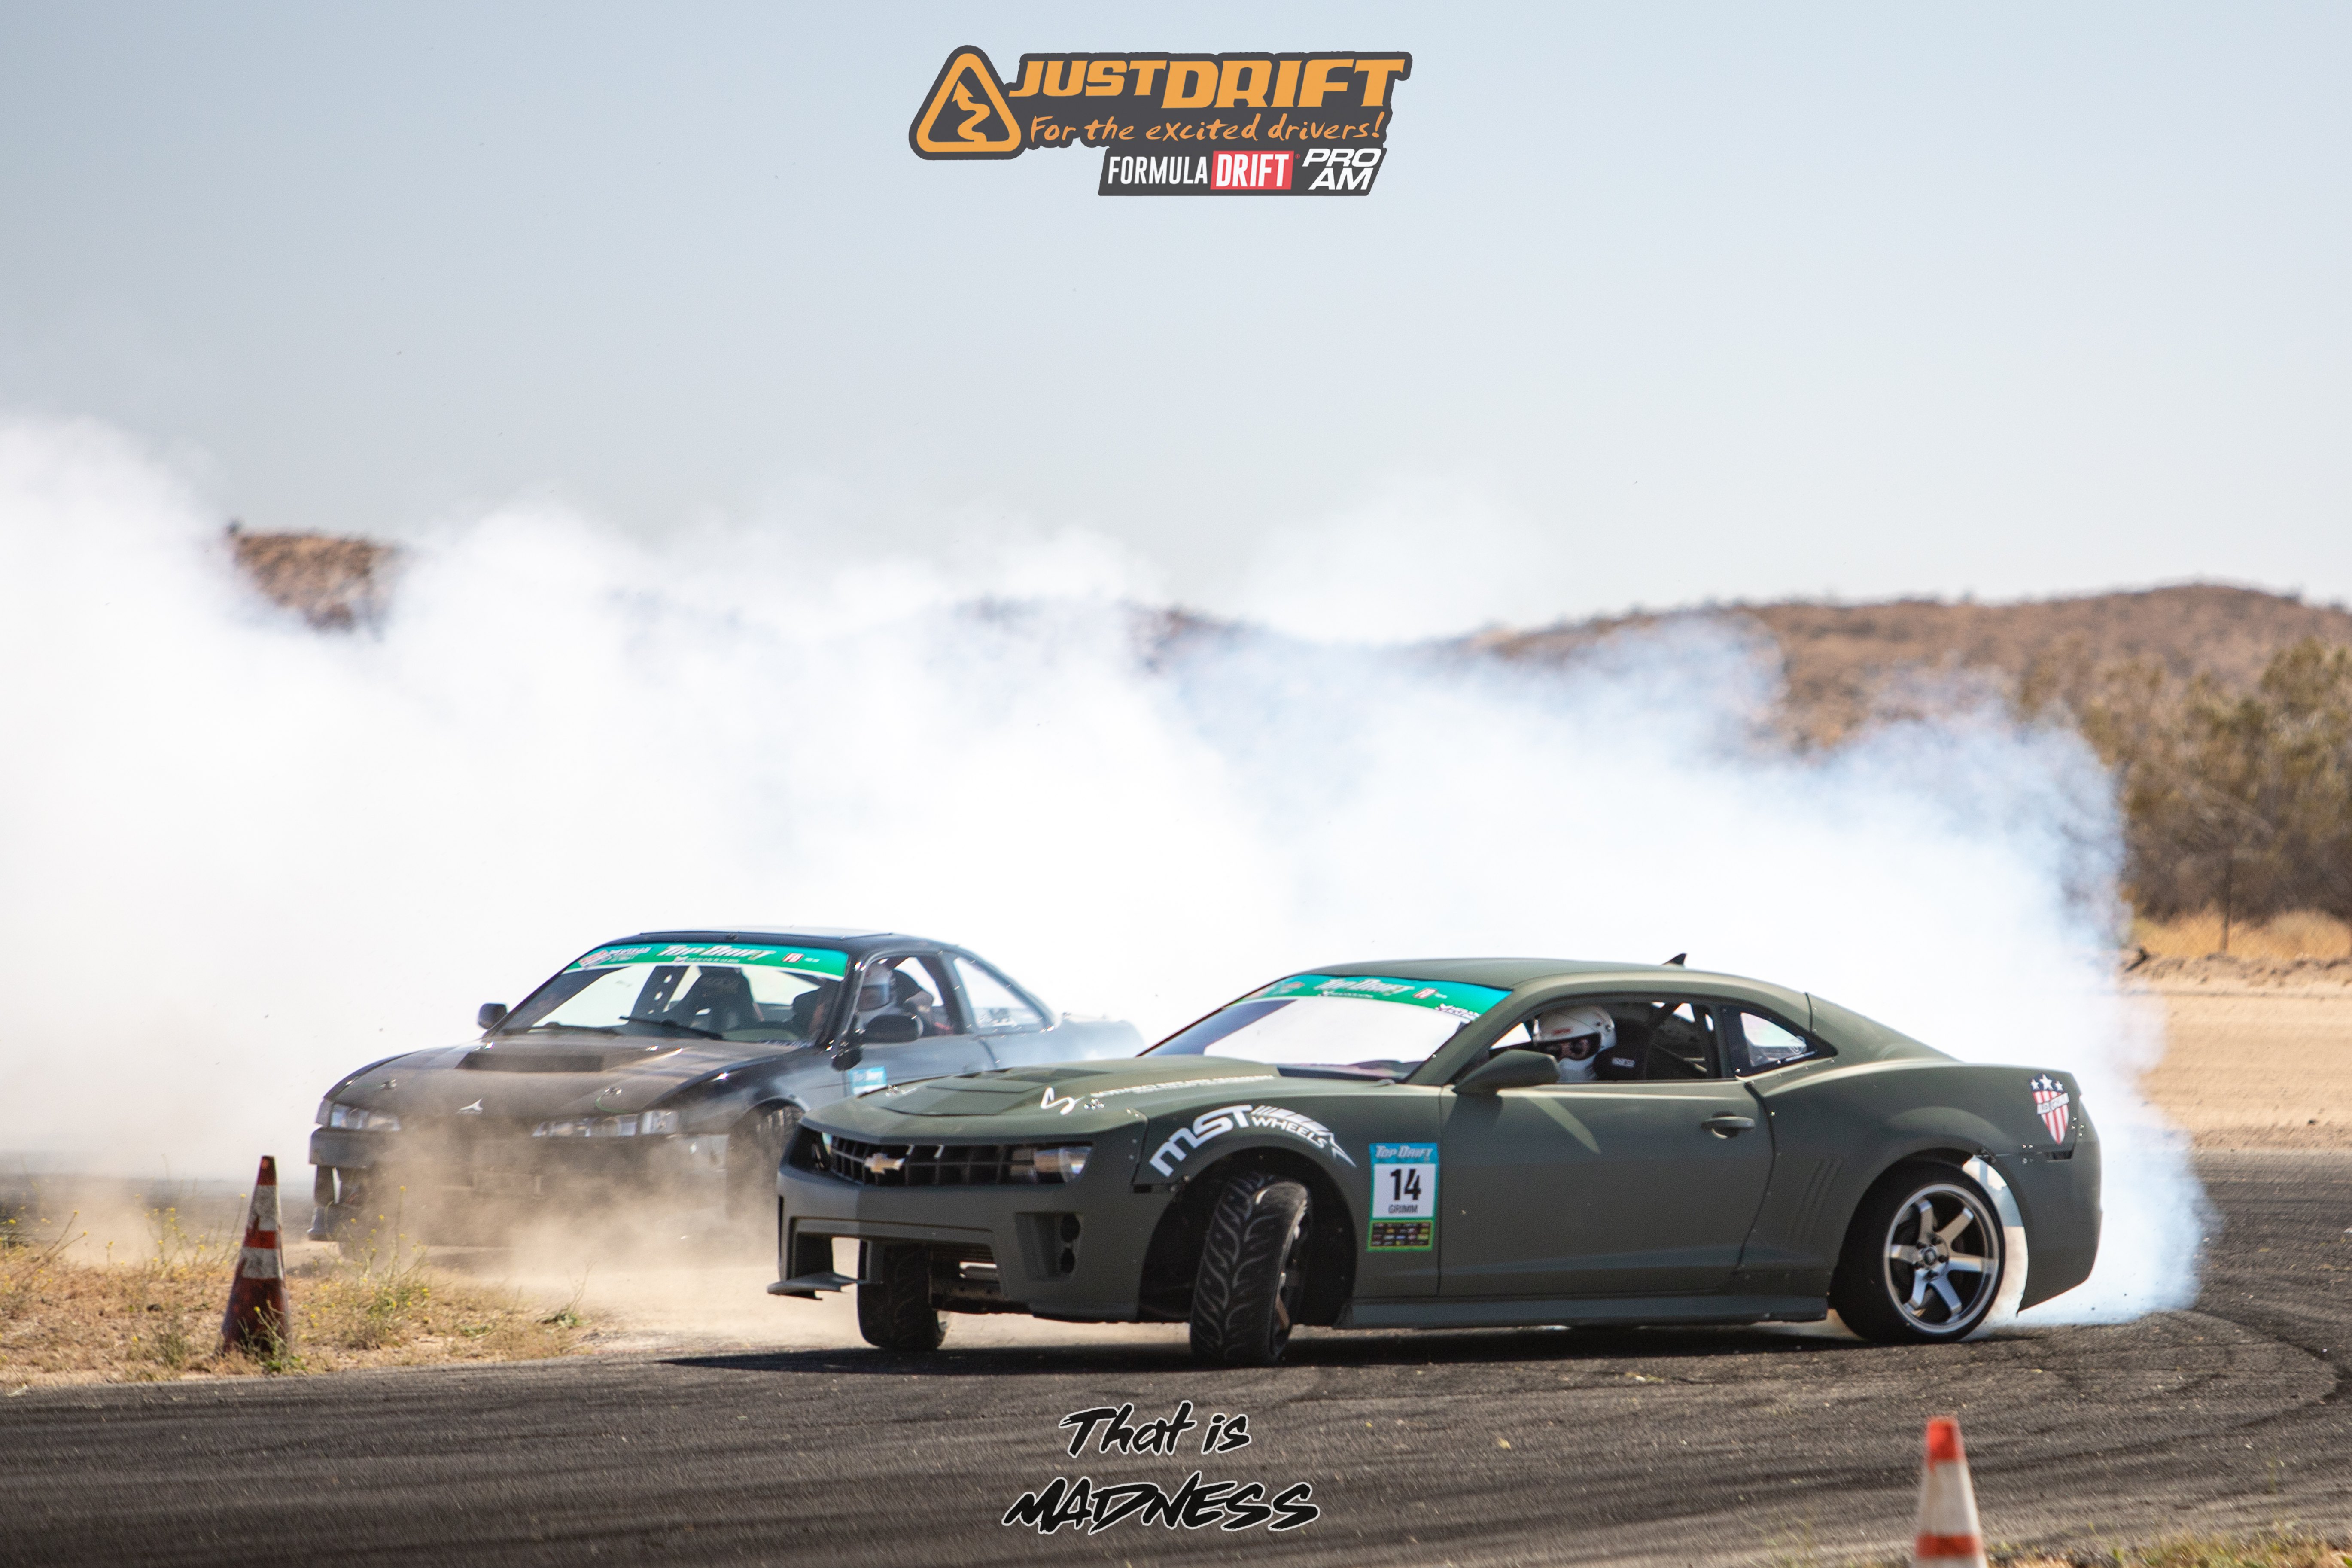 JUSTDRIFT LLC